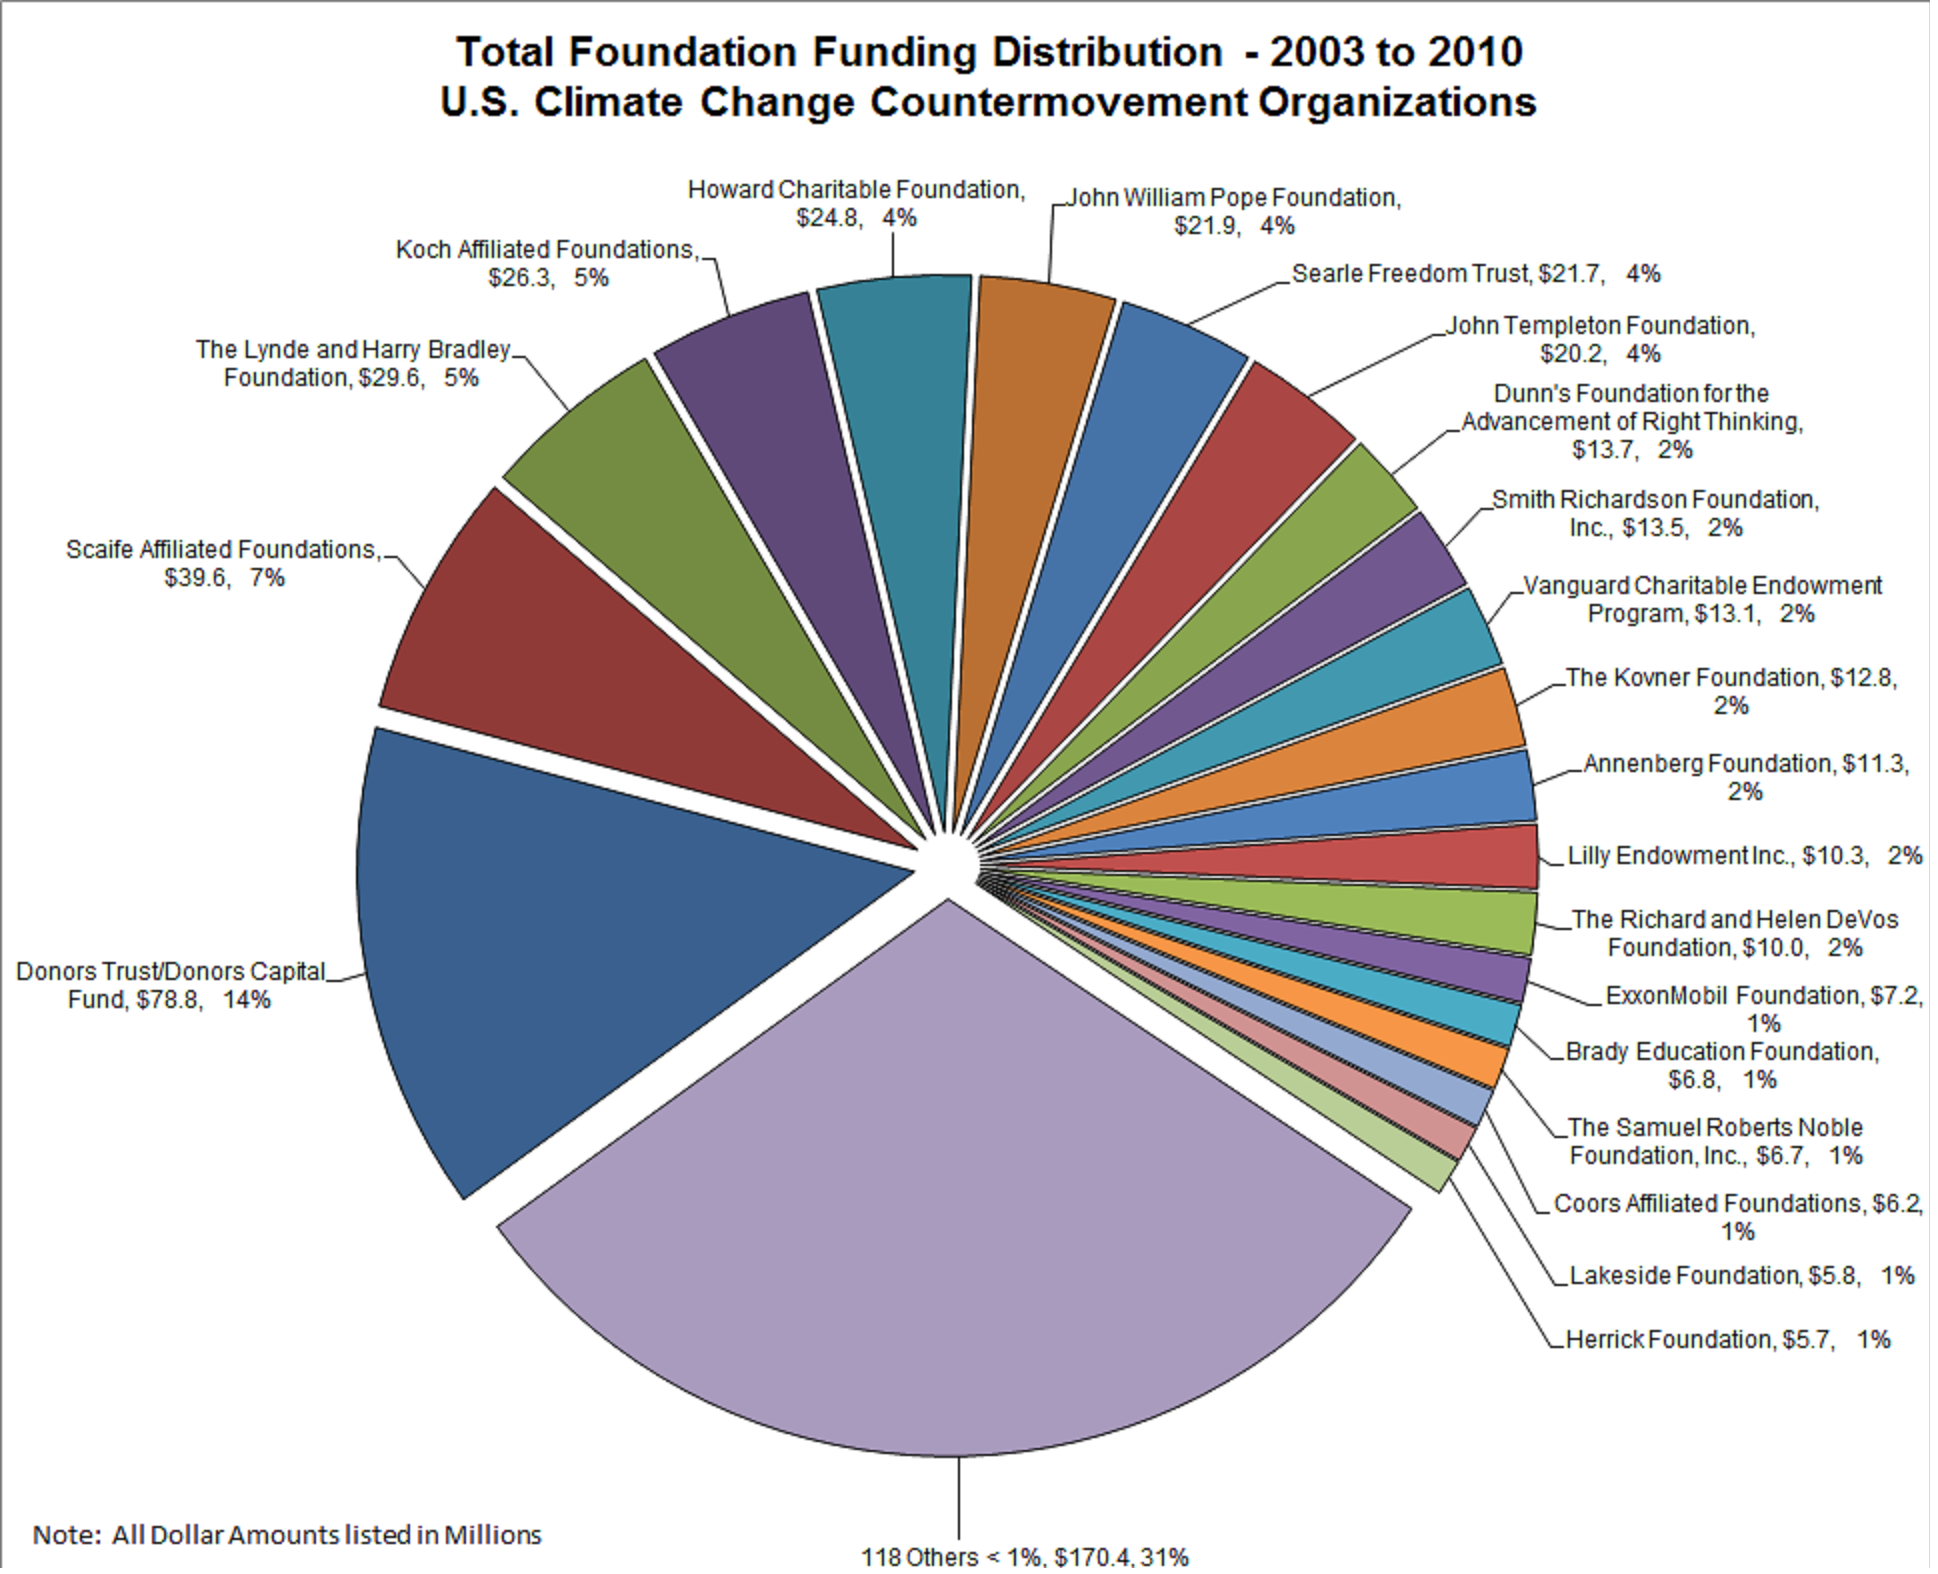 This chart shows the overall amount and percentage distribution of foundation funding of countermovement organizations